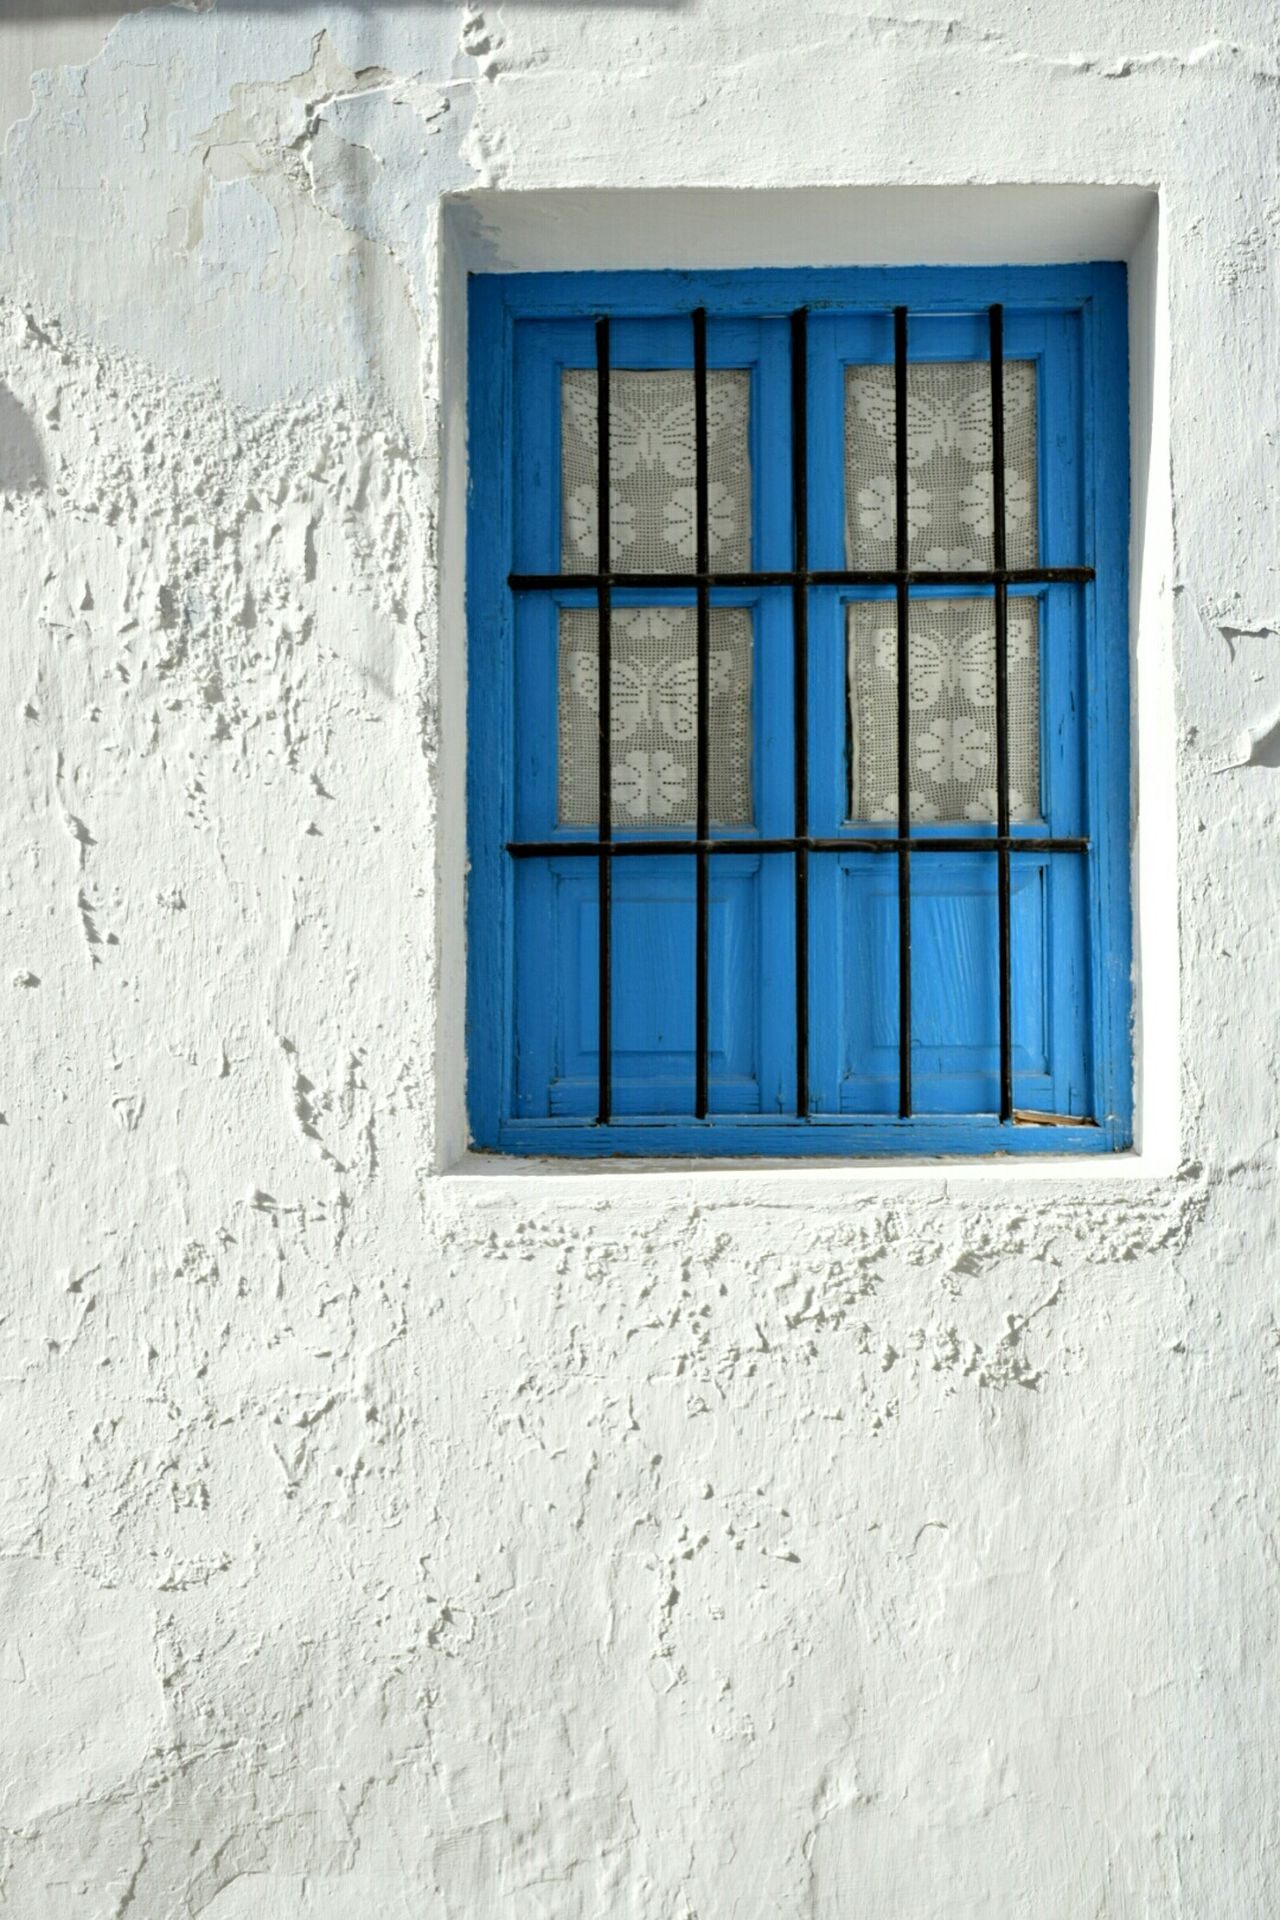 White&Blue. Frigiliana #malaga SPAIN Españoles Y Sus Fotos Nikonphotography Nikond5300 Windows Eye For Details From My Point Of View Blue Travel Photography Minimalist Architecture